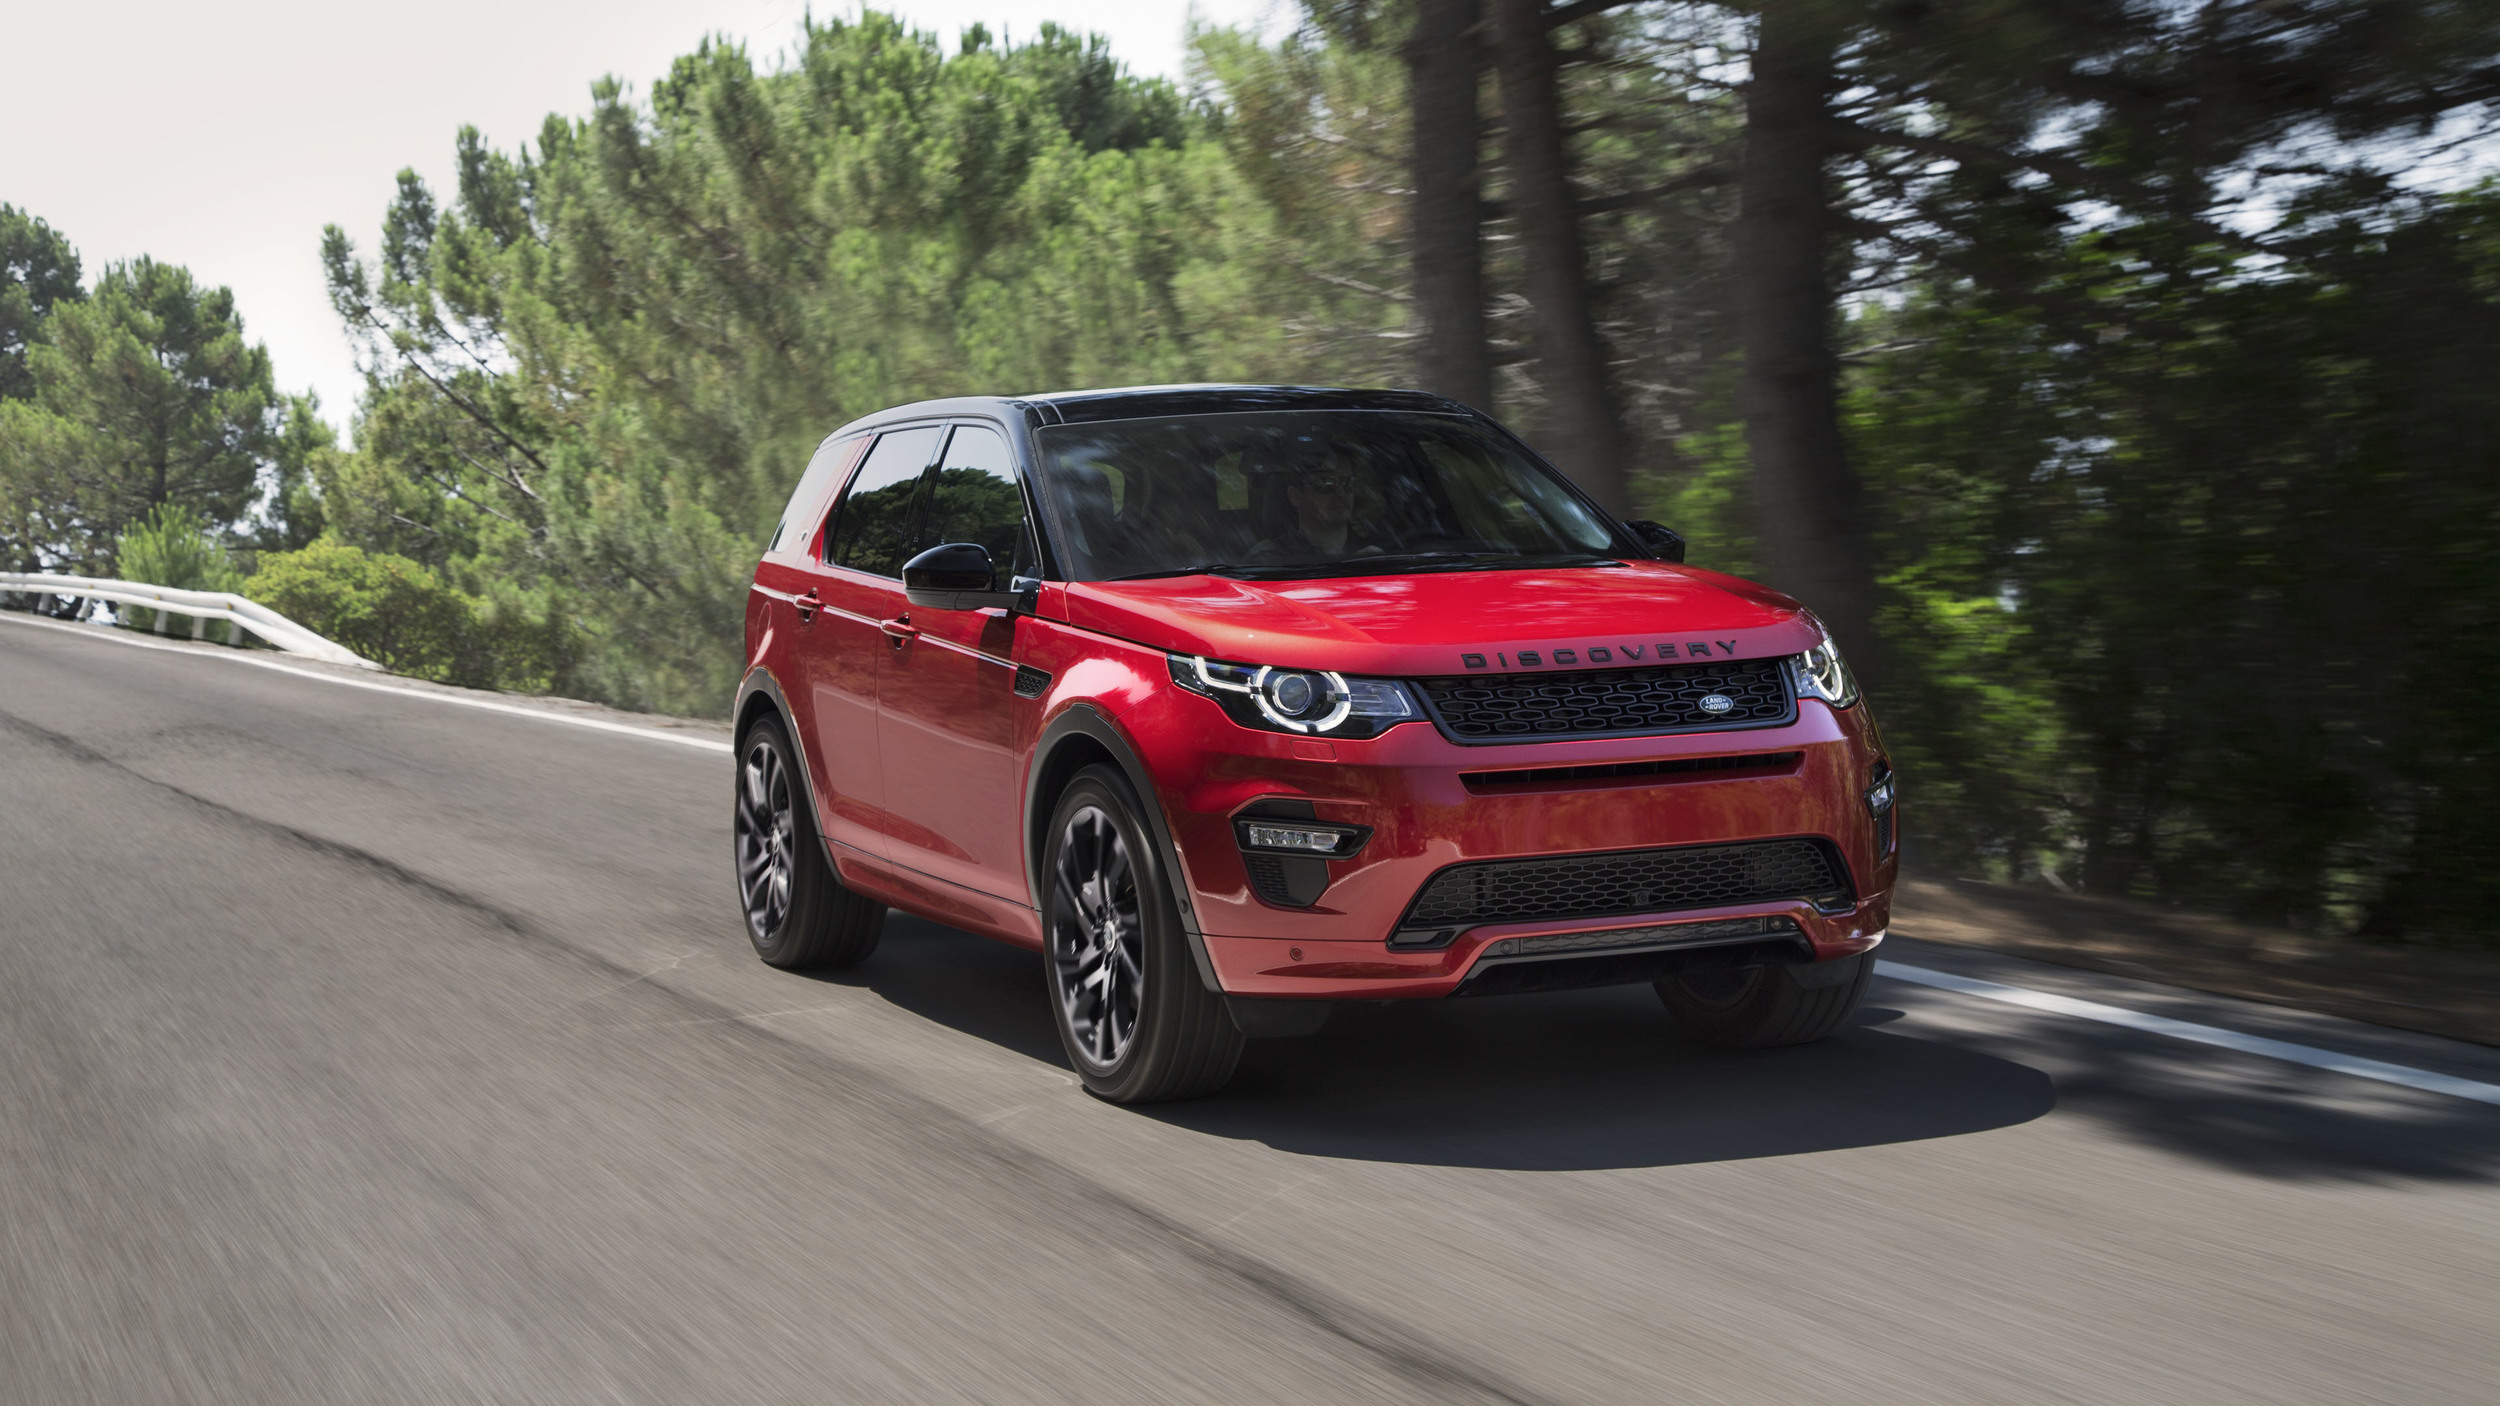 2017 Land Rover Discovery Sport Gallery Autoblog